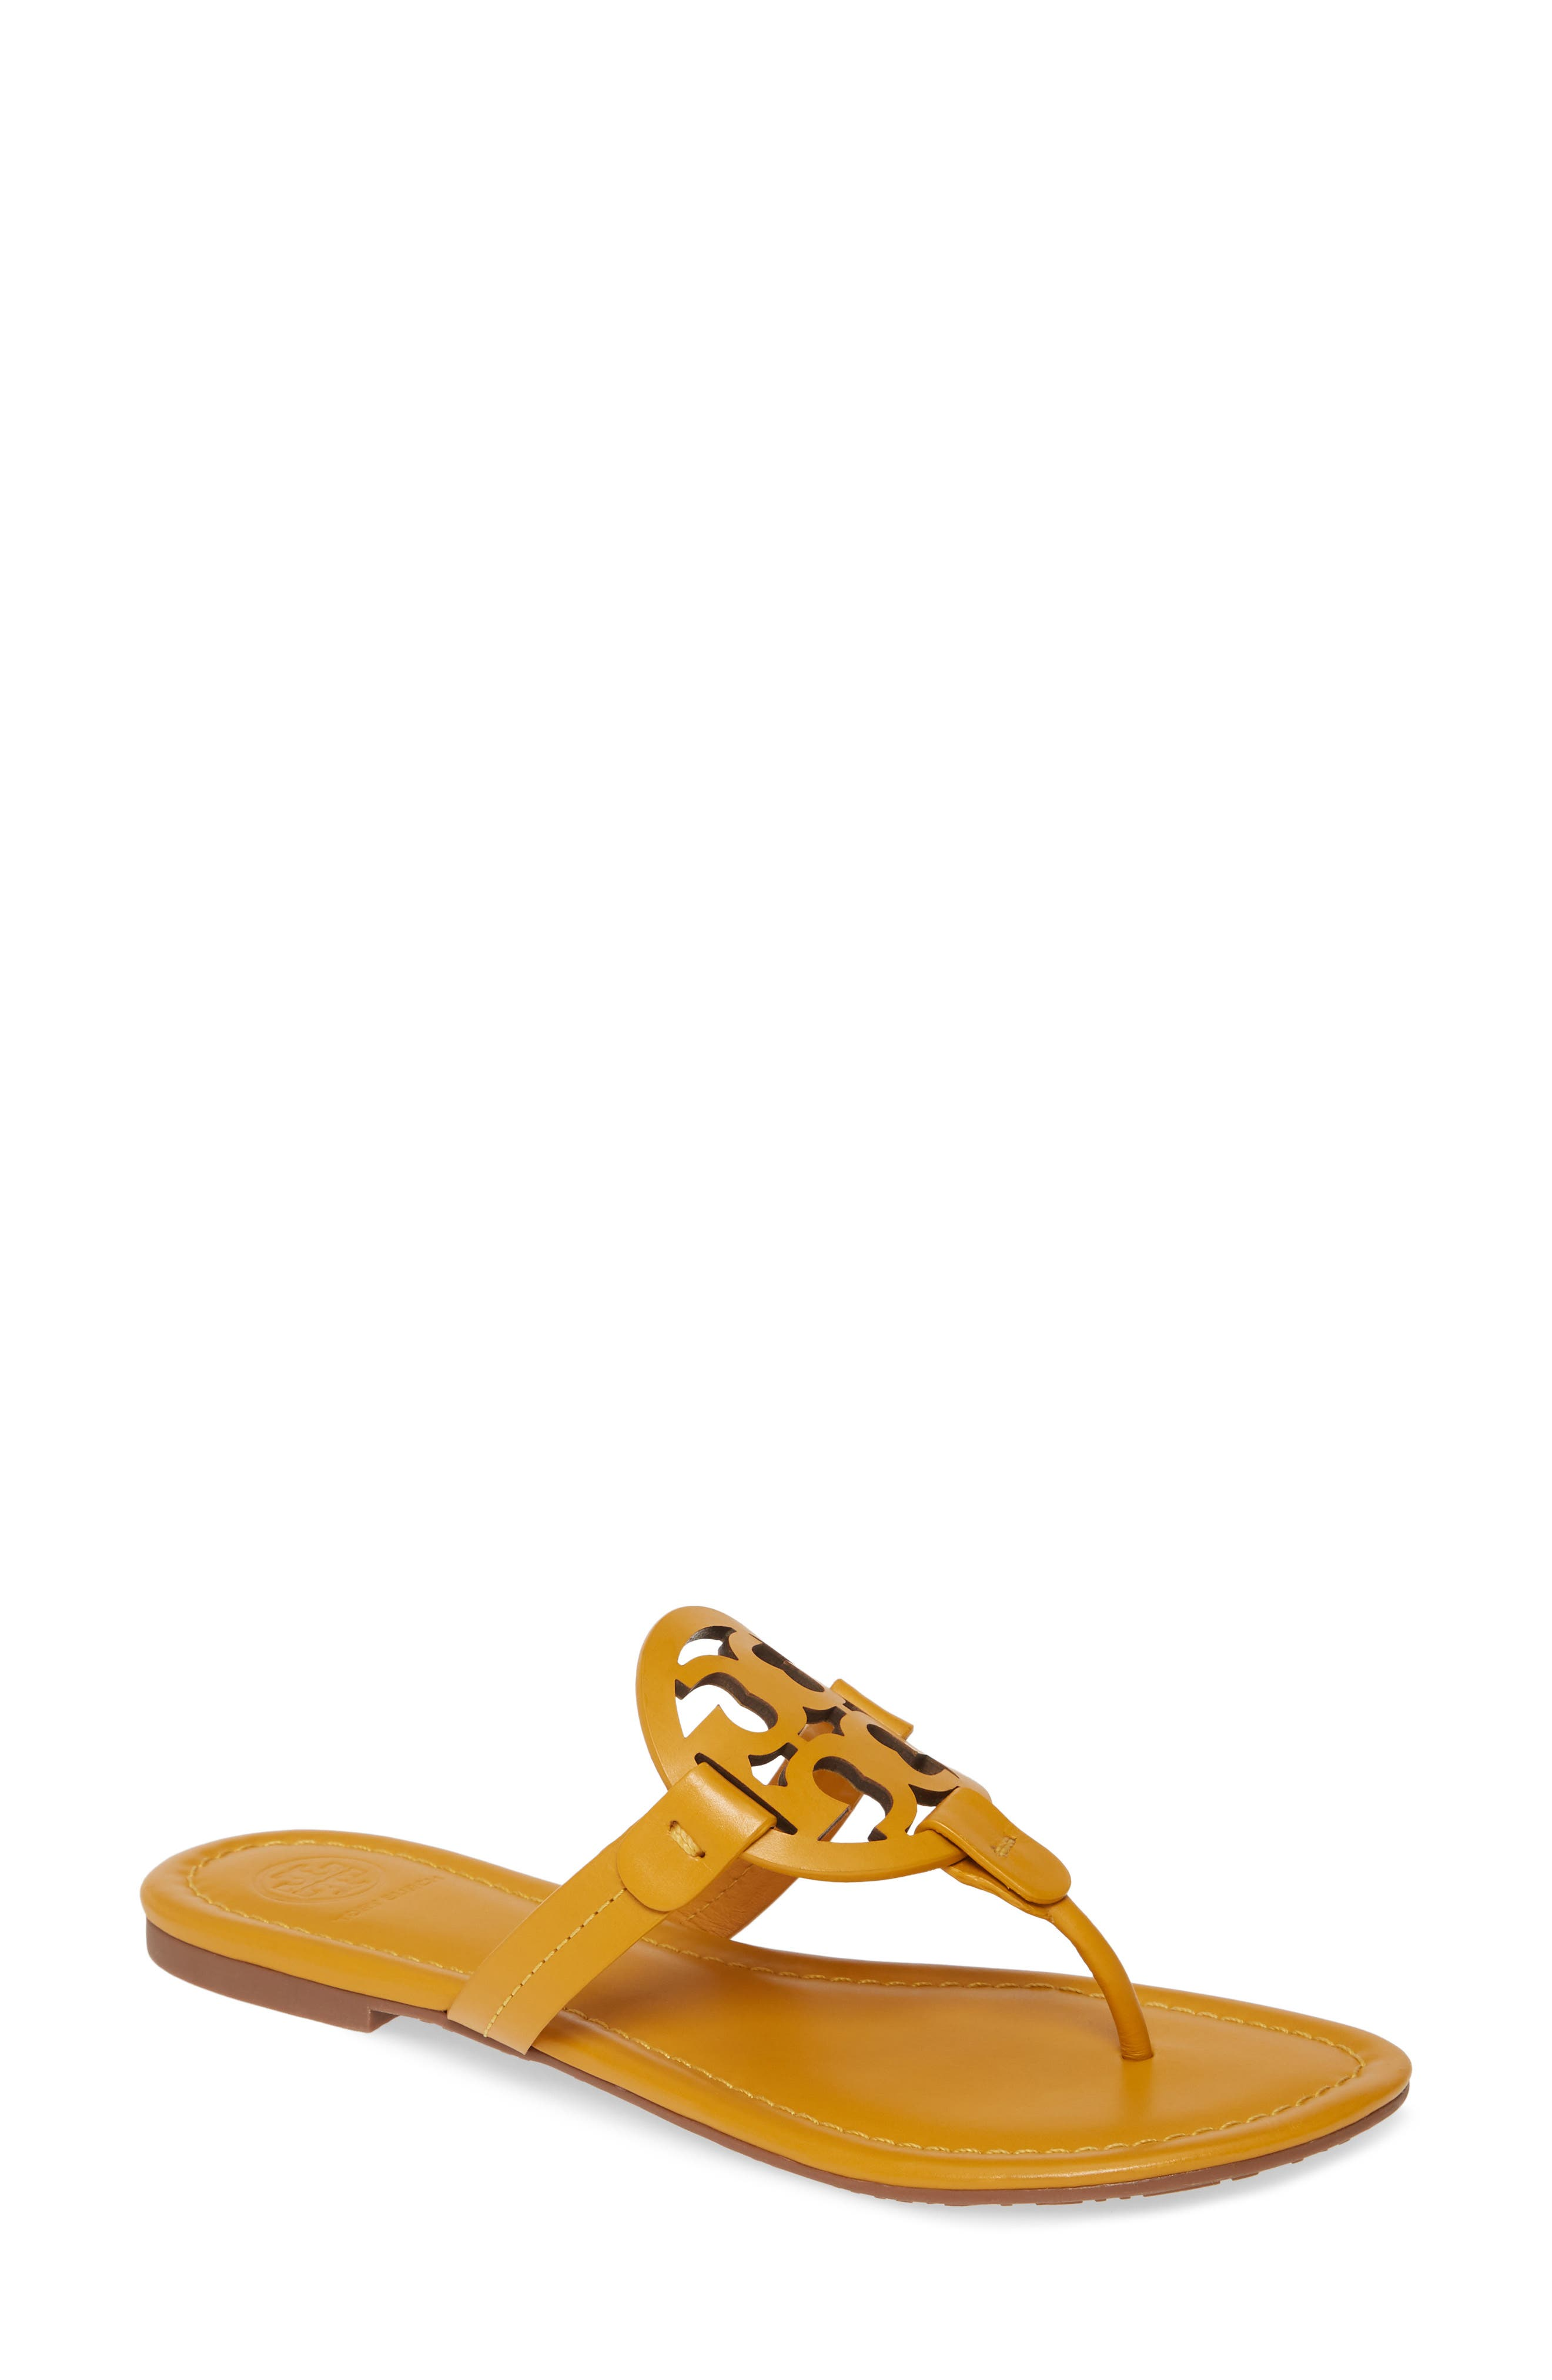 Cute Womens Shoes & Sandals To Buy On Amazon Prime Day